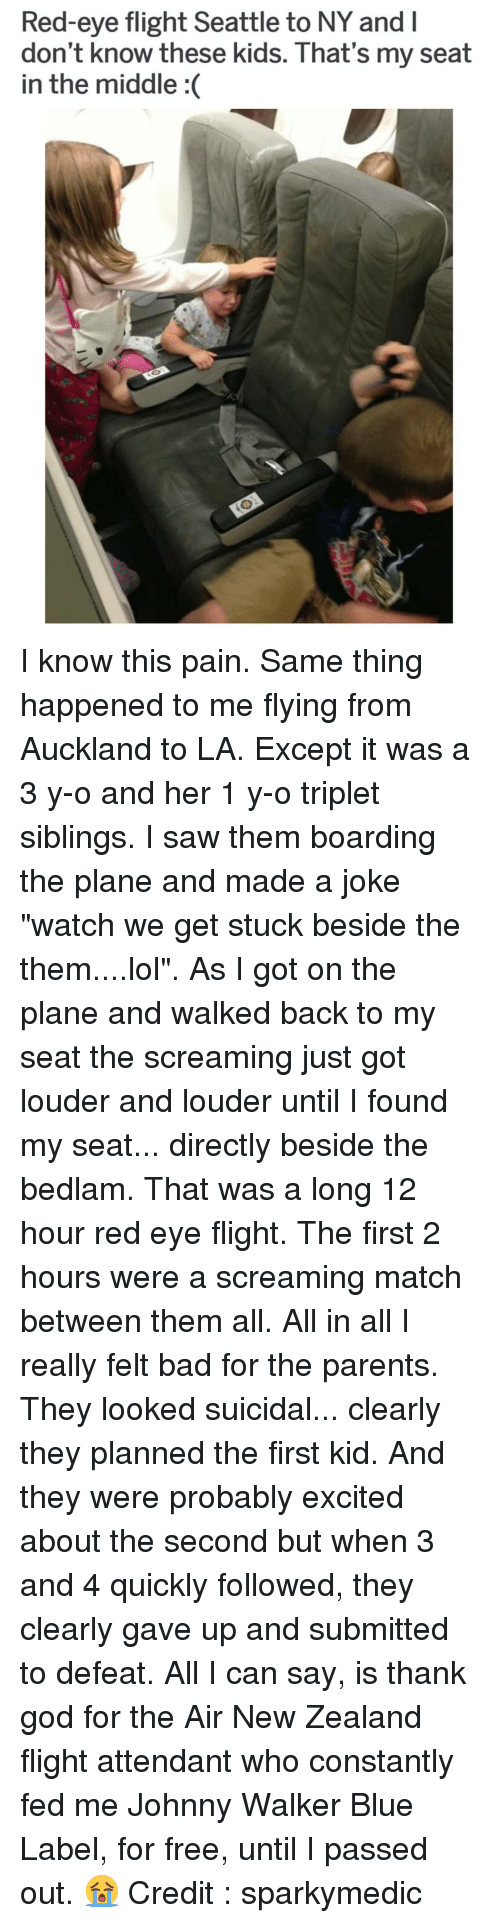 """first kid: Red-eye flight Seattle to NY and l  don't know these kids. That's my seat  in the middle :( I know this pain. Same thing happened to me flying from Auckland to LA. Except it was a 3 y-o and her 1 y-o triplet siblings. I saw them boarding the plane and made a joke """"watch we get stuck beside the them....lol"""". As I got on the plane and walked back to my seat the screaming just got louder and louder until I found my seat... directly beside the bedlam. That was a long 12 hour red eye flight. The first 2 hours were a screaming match between them all. All in all I really felt bad for the parents. They looked suicidal... clearly they planned the first kid. And they were probably excited about the second but when 3 and 4 quickly followed, they clearly gave up and submitted to defeat. All I can say, is thank god for the Air New Zealand flight attendant who constantly fed me Johnny Walker Blue Label, for free, until I passed out. 😭 Credit : sparkymedic"""